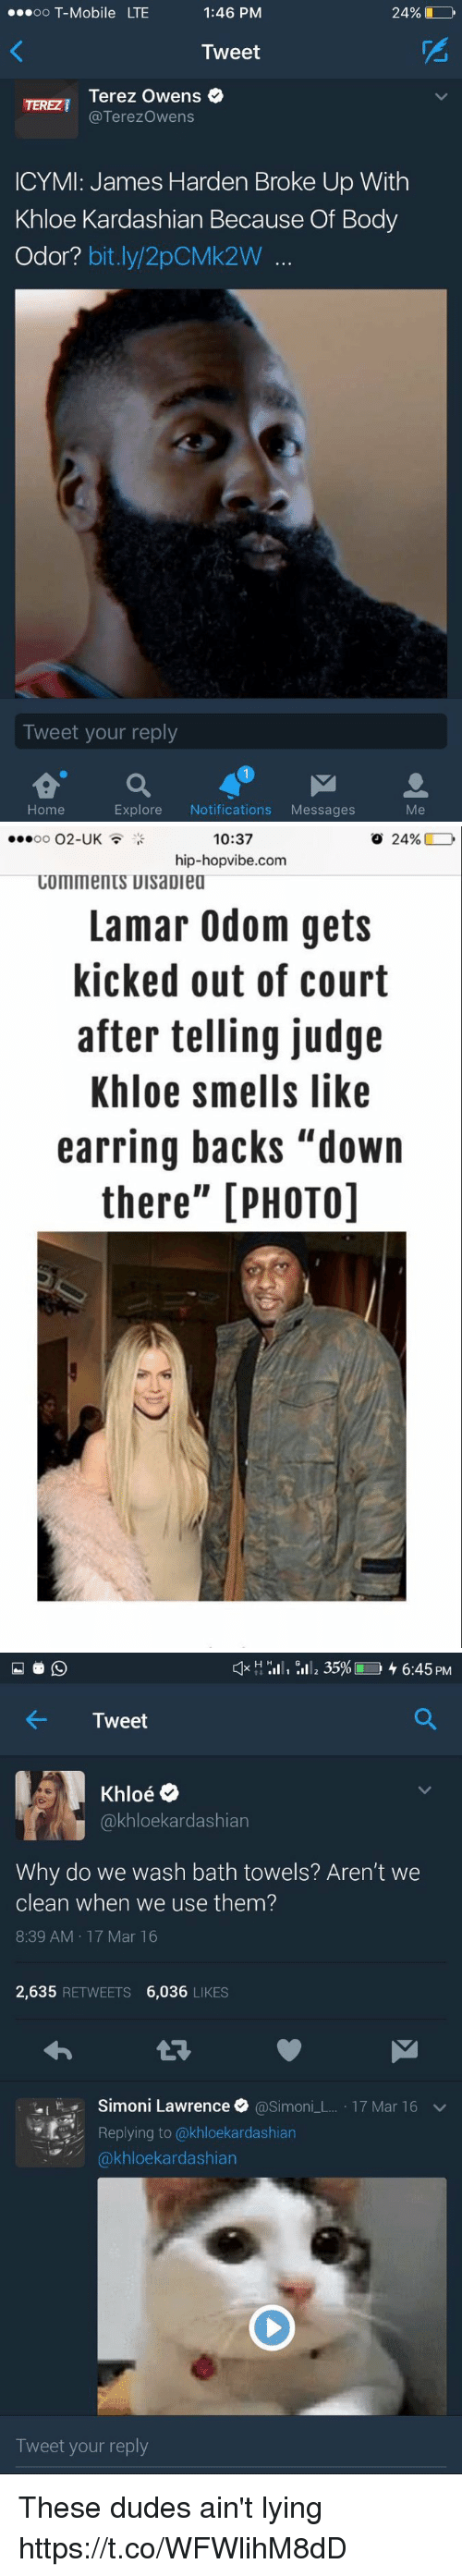 """earring: OO  T-Mobile LTE  1:46 PM  24%  Tweet  Terez Owens  Terezowens  ICYMI: James Harden Broke Up With  Khloe Kardashian Because Of Body  Odor?  bit.ly 2pCMk2W  Tweet your reply  Explore  Notifications  Messages  Home   10:37  o 24%  OO  O2-UK  hip-hopvibe.com  COMMentS UIsaDiea  Lamar Odom gets  kicked out of court  after telling judge  Khloe smells like  earring backs """"down  there"""" [PHOTO]   H H  III, 35% 4 6:45 PM  4- Tweet  Oe  akhloekardashian  Why do we wash bath towels? Aren't we  clean when we use them?  8:39 AM 17 Mar 16  2,635  RETWEETS  6,036  LIKES  .I Simoni Lawrence  @Simon  L. 17 Mar 16 v  Replying to (akhloekardashian  kardashian  Tweet your reply These dudes ain't lying https://t.co/WFWlihM8dD"""